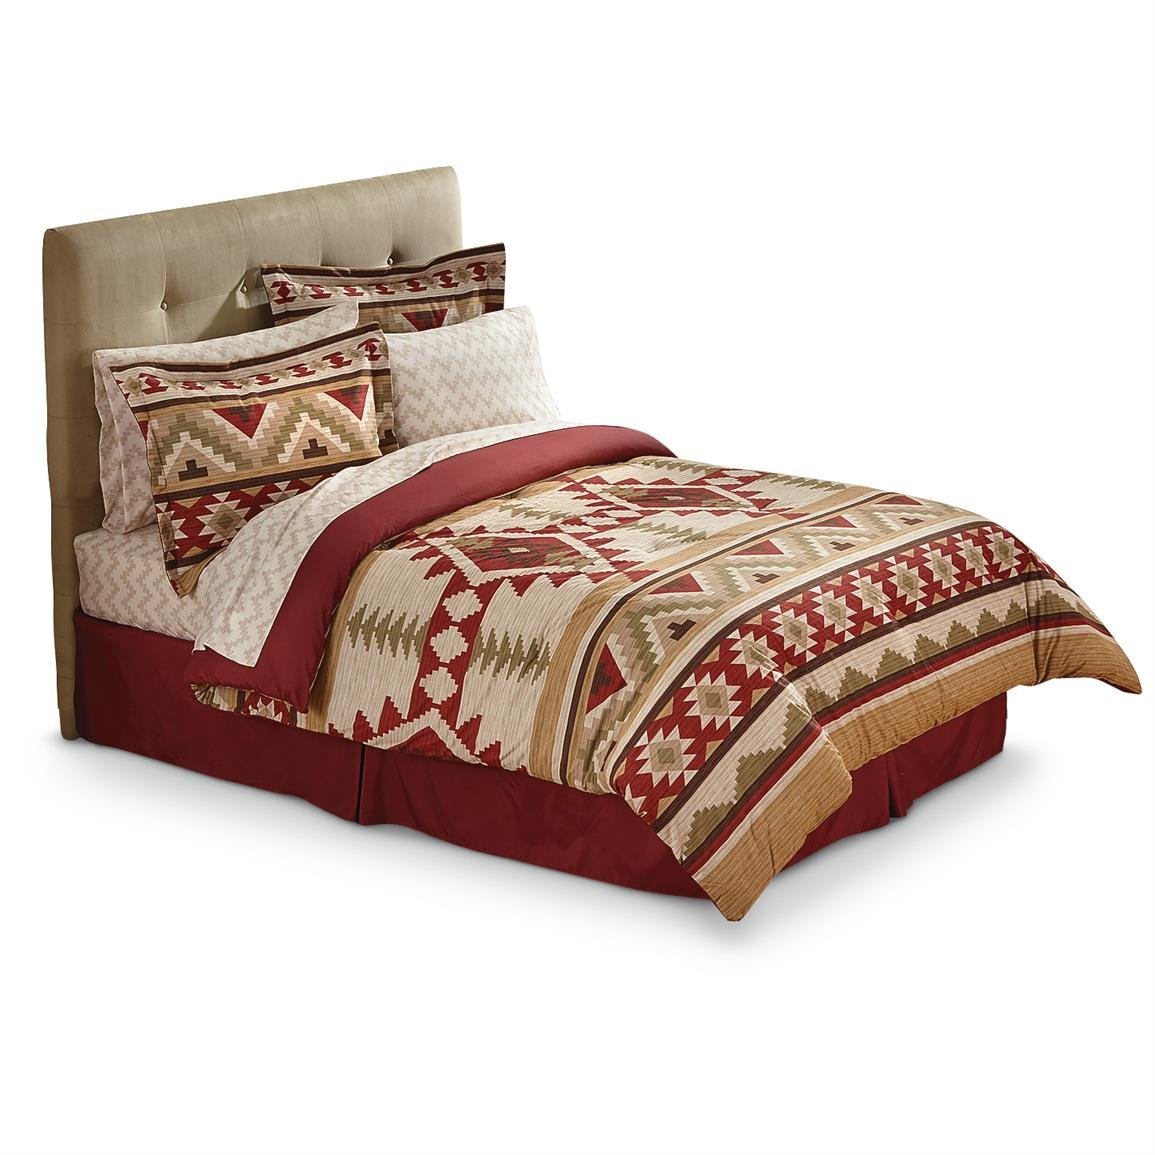 Southwest Red & Tan Native American Queen Comforter, Sheets, Shams & Bed Skirt (8 Piece Bed In A Bag) + HOMEMADE WAX MELT